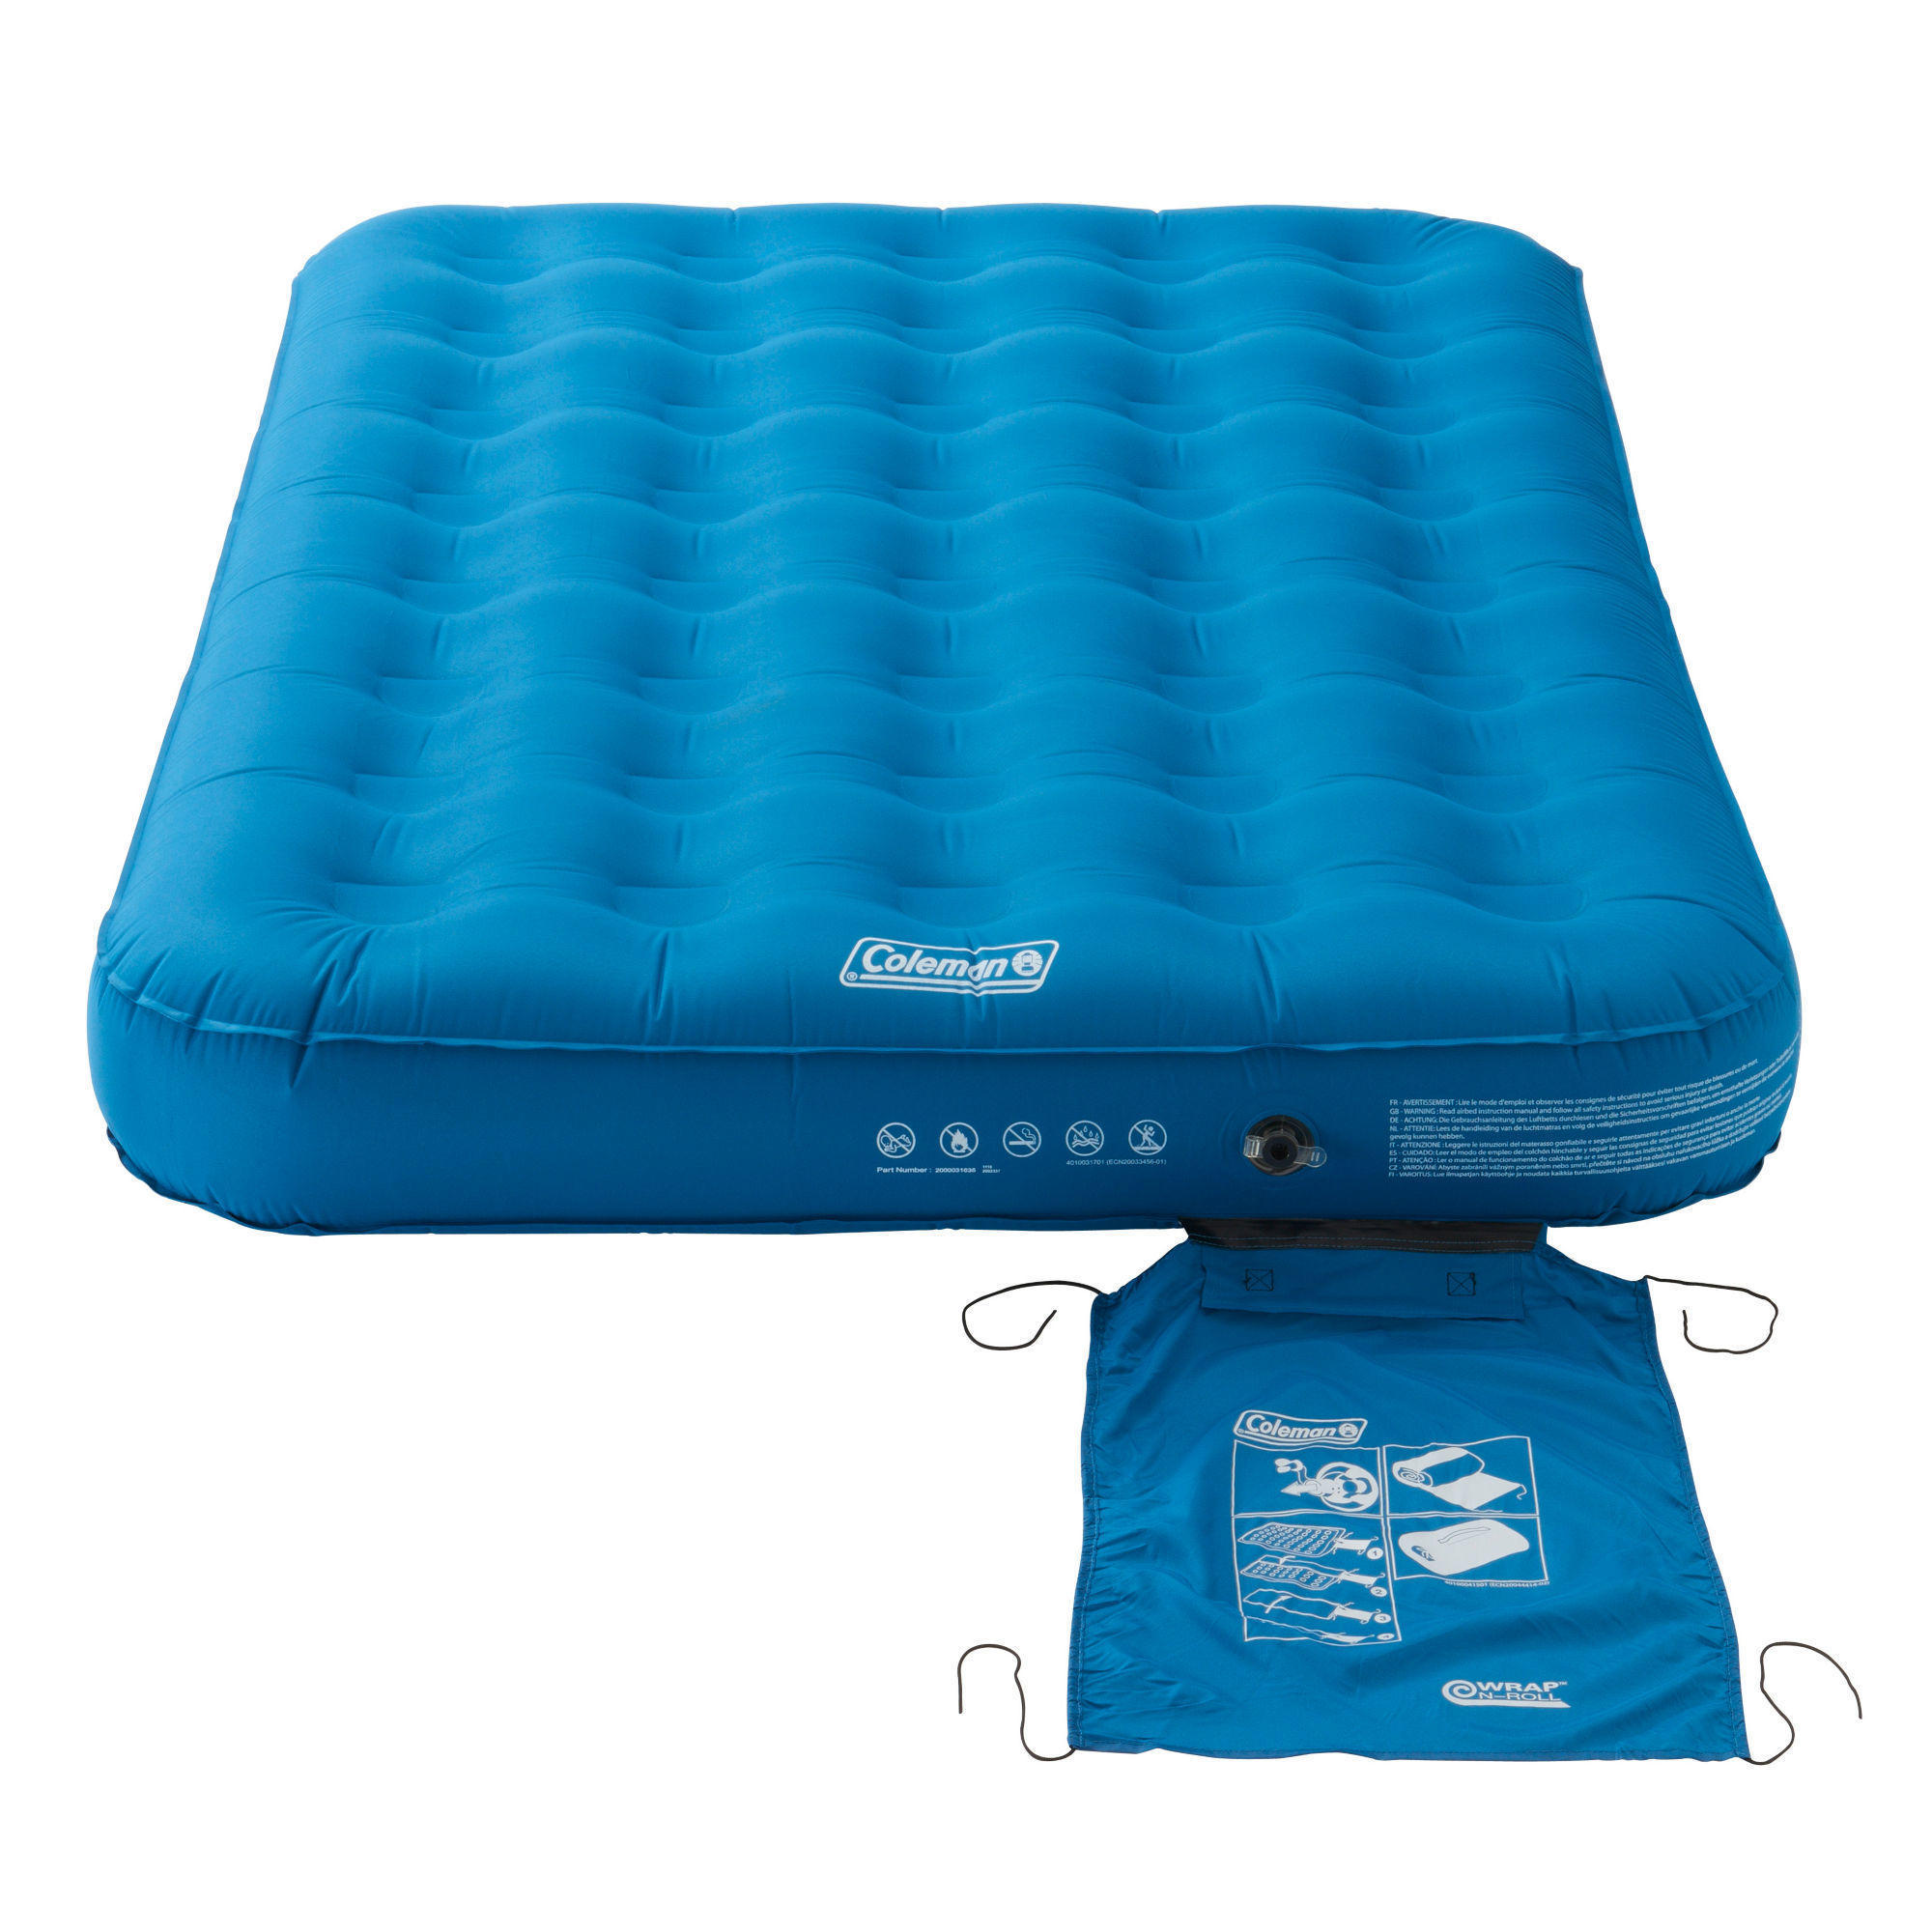 Matelas Gonflable De Camping Extra Durable Airbed 137 Cm 2 Personnes Coleman Decathlon